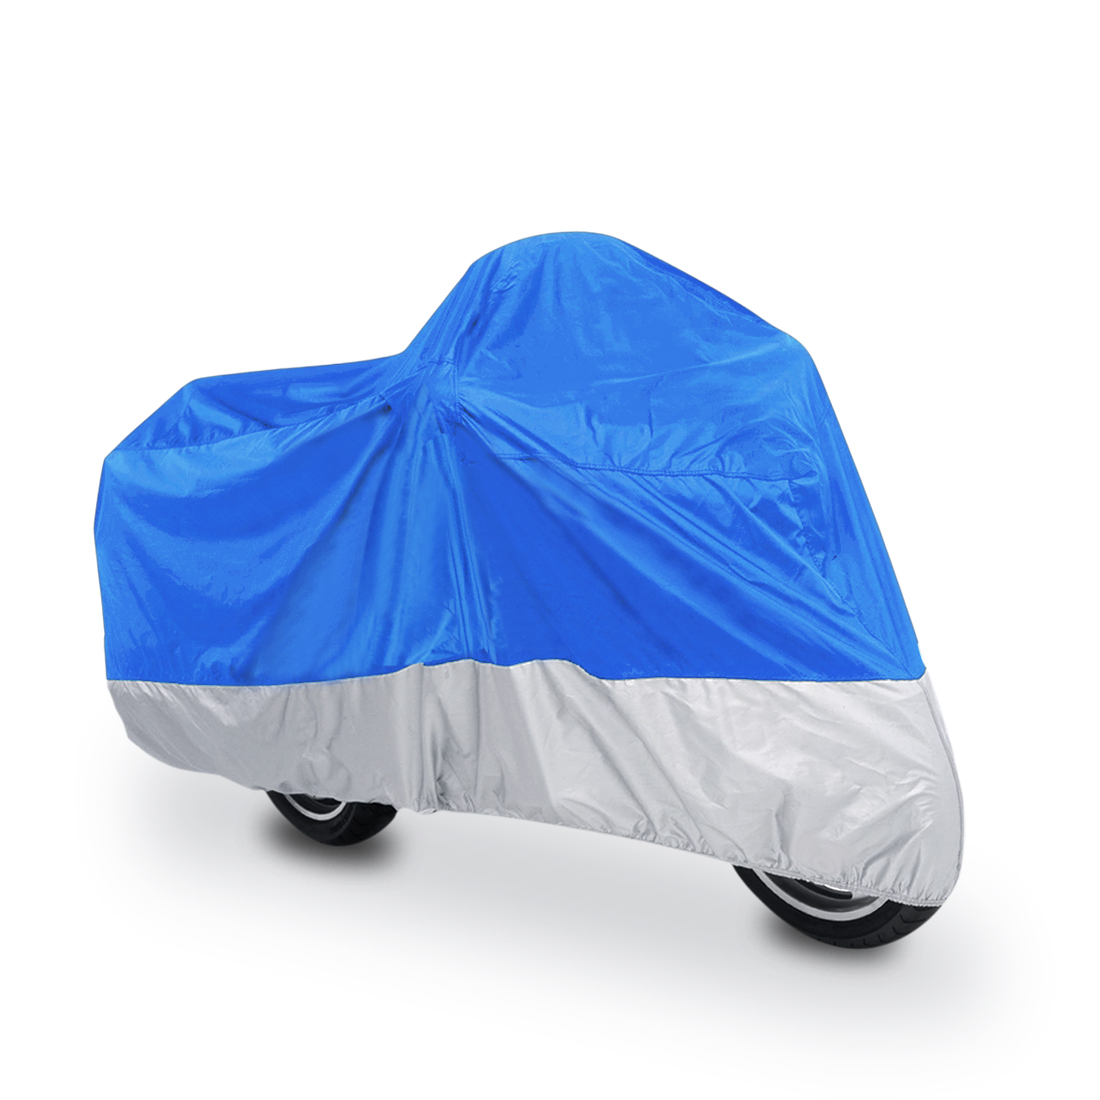 XXXL 180T Rain Dust Motorcycle Scooter Cover Blue+Silver Outdoor UV Protector